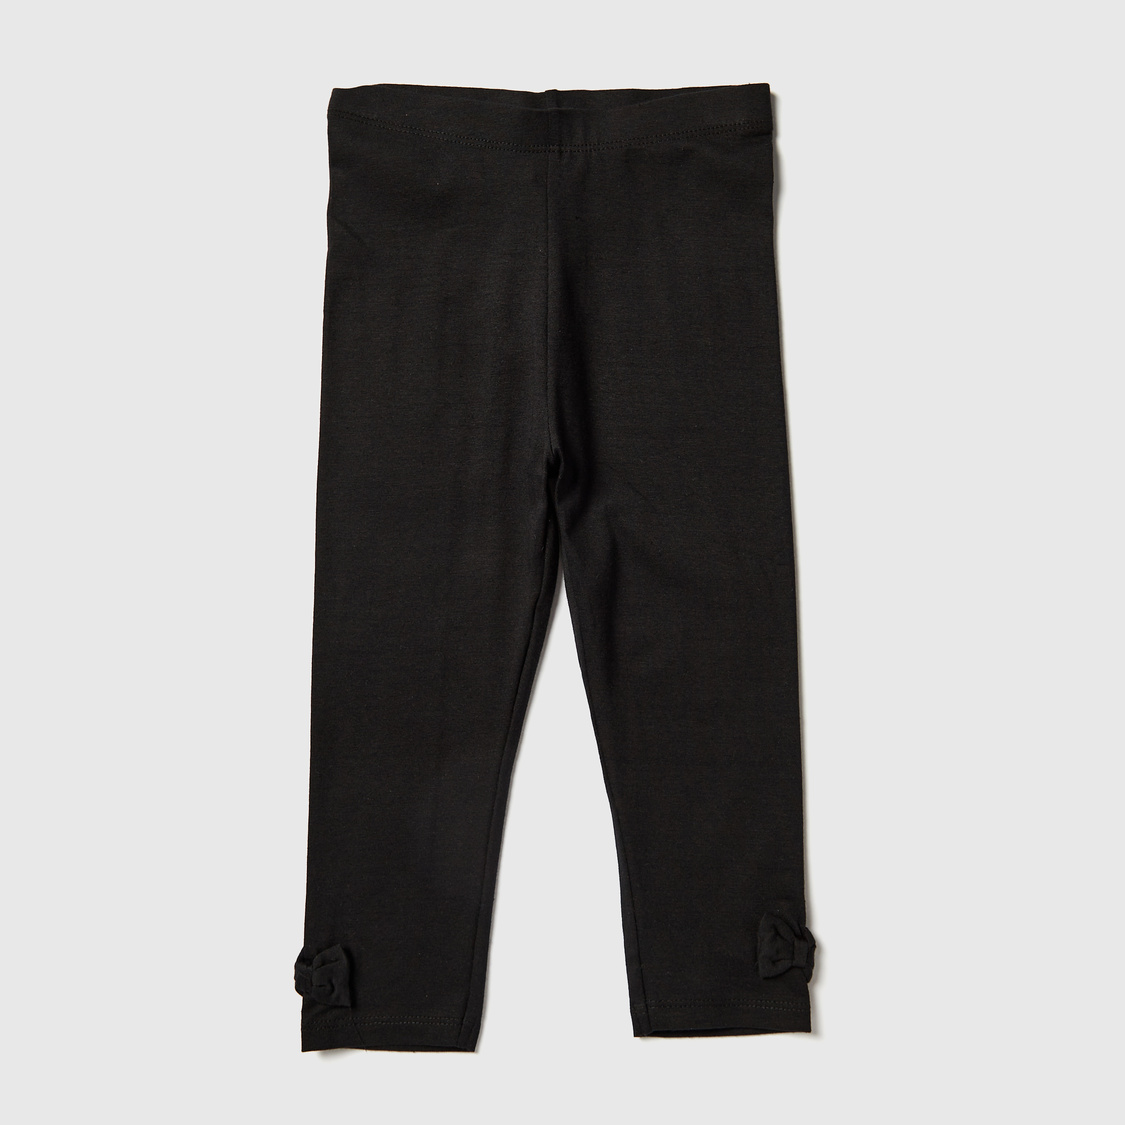 Solid Leggings with Elasticised Waistband and Bow Accent